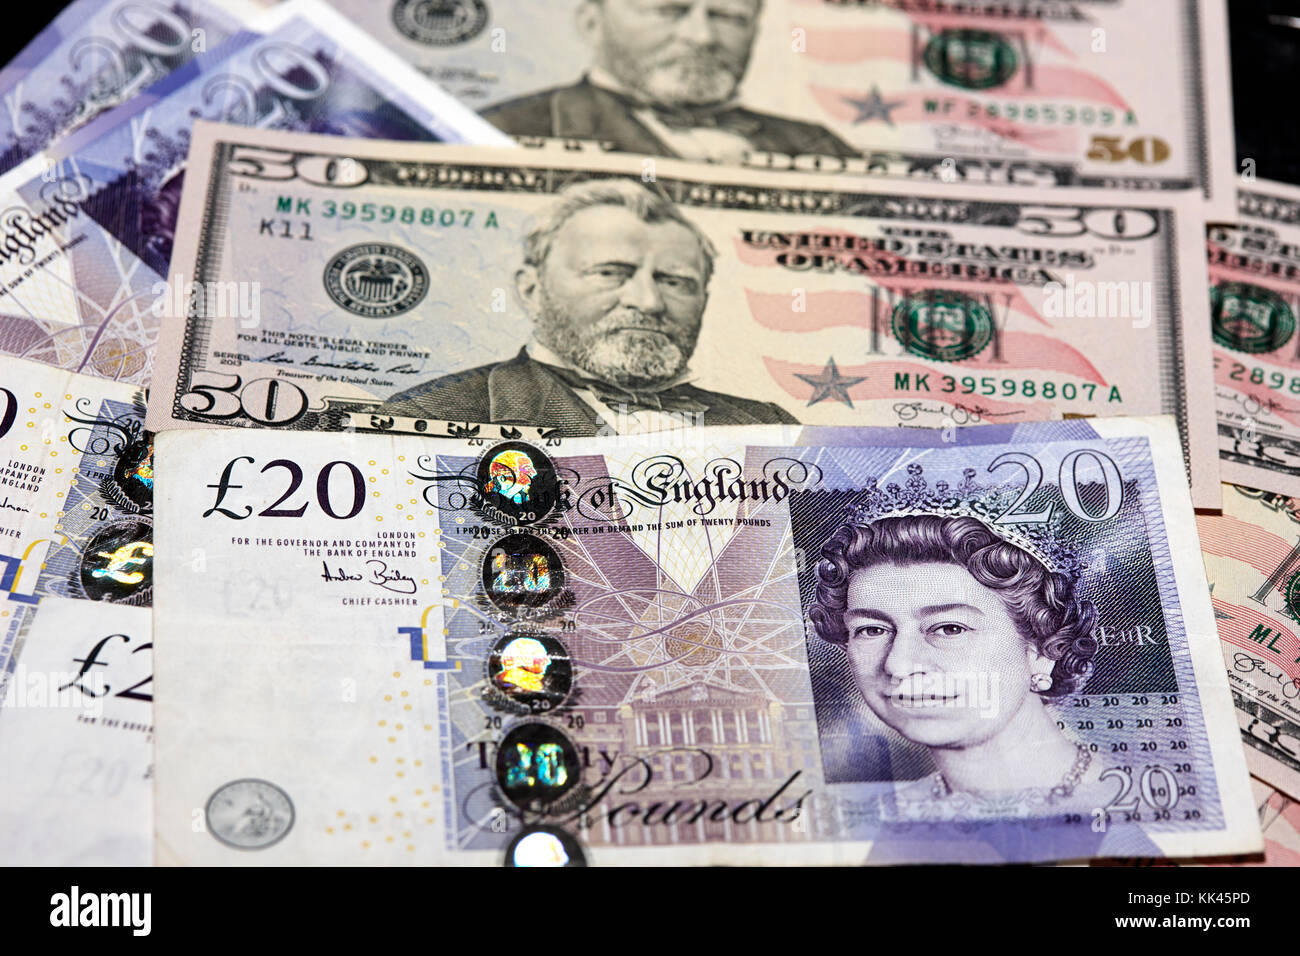 british pounds and us dollars cash - Stock Image